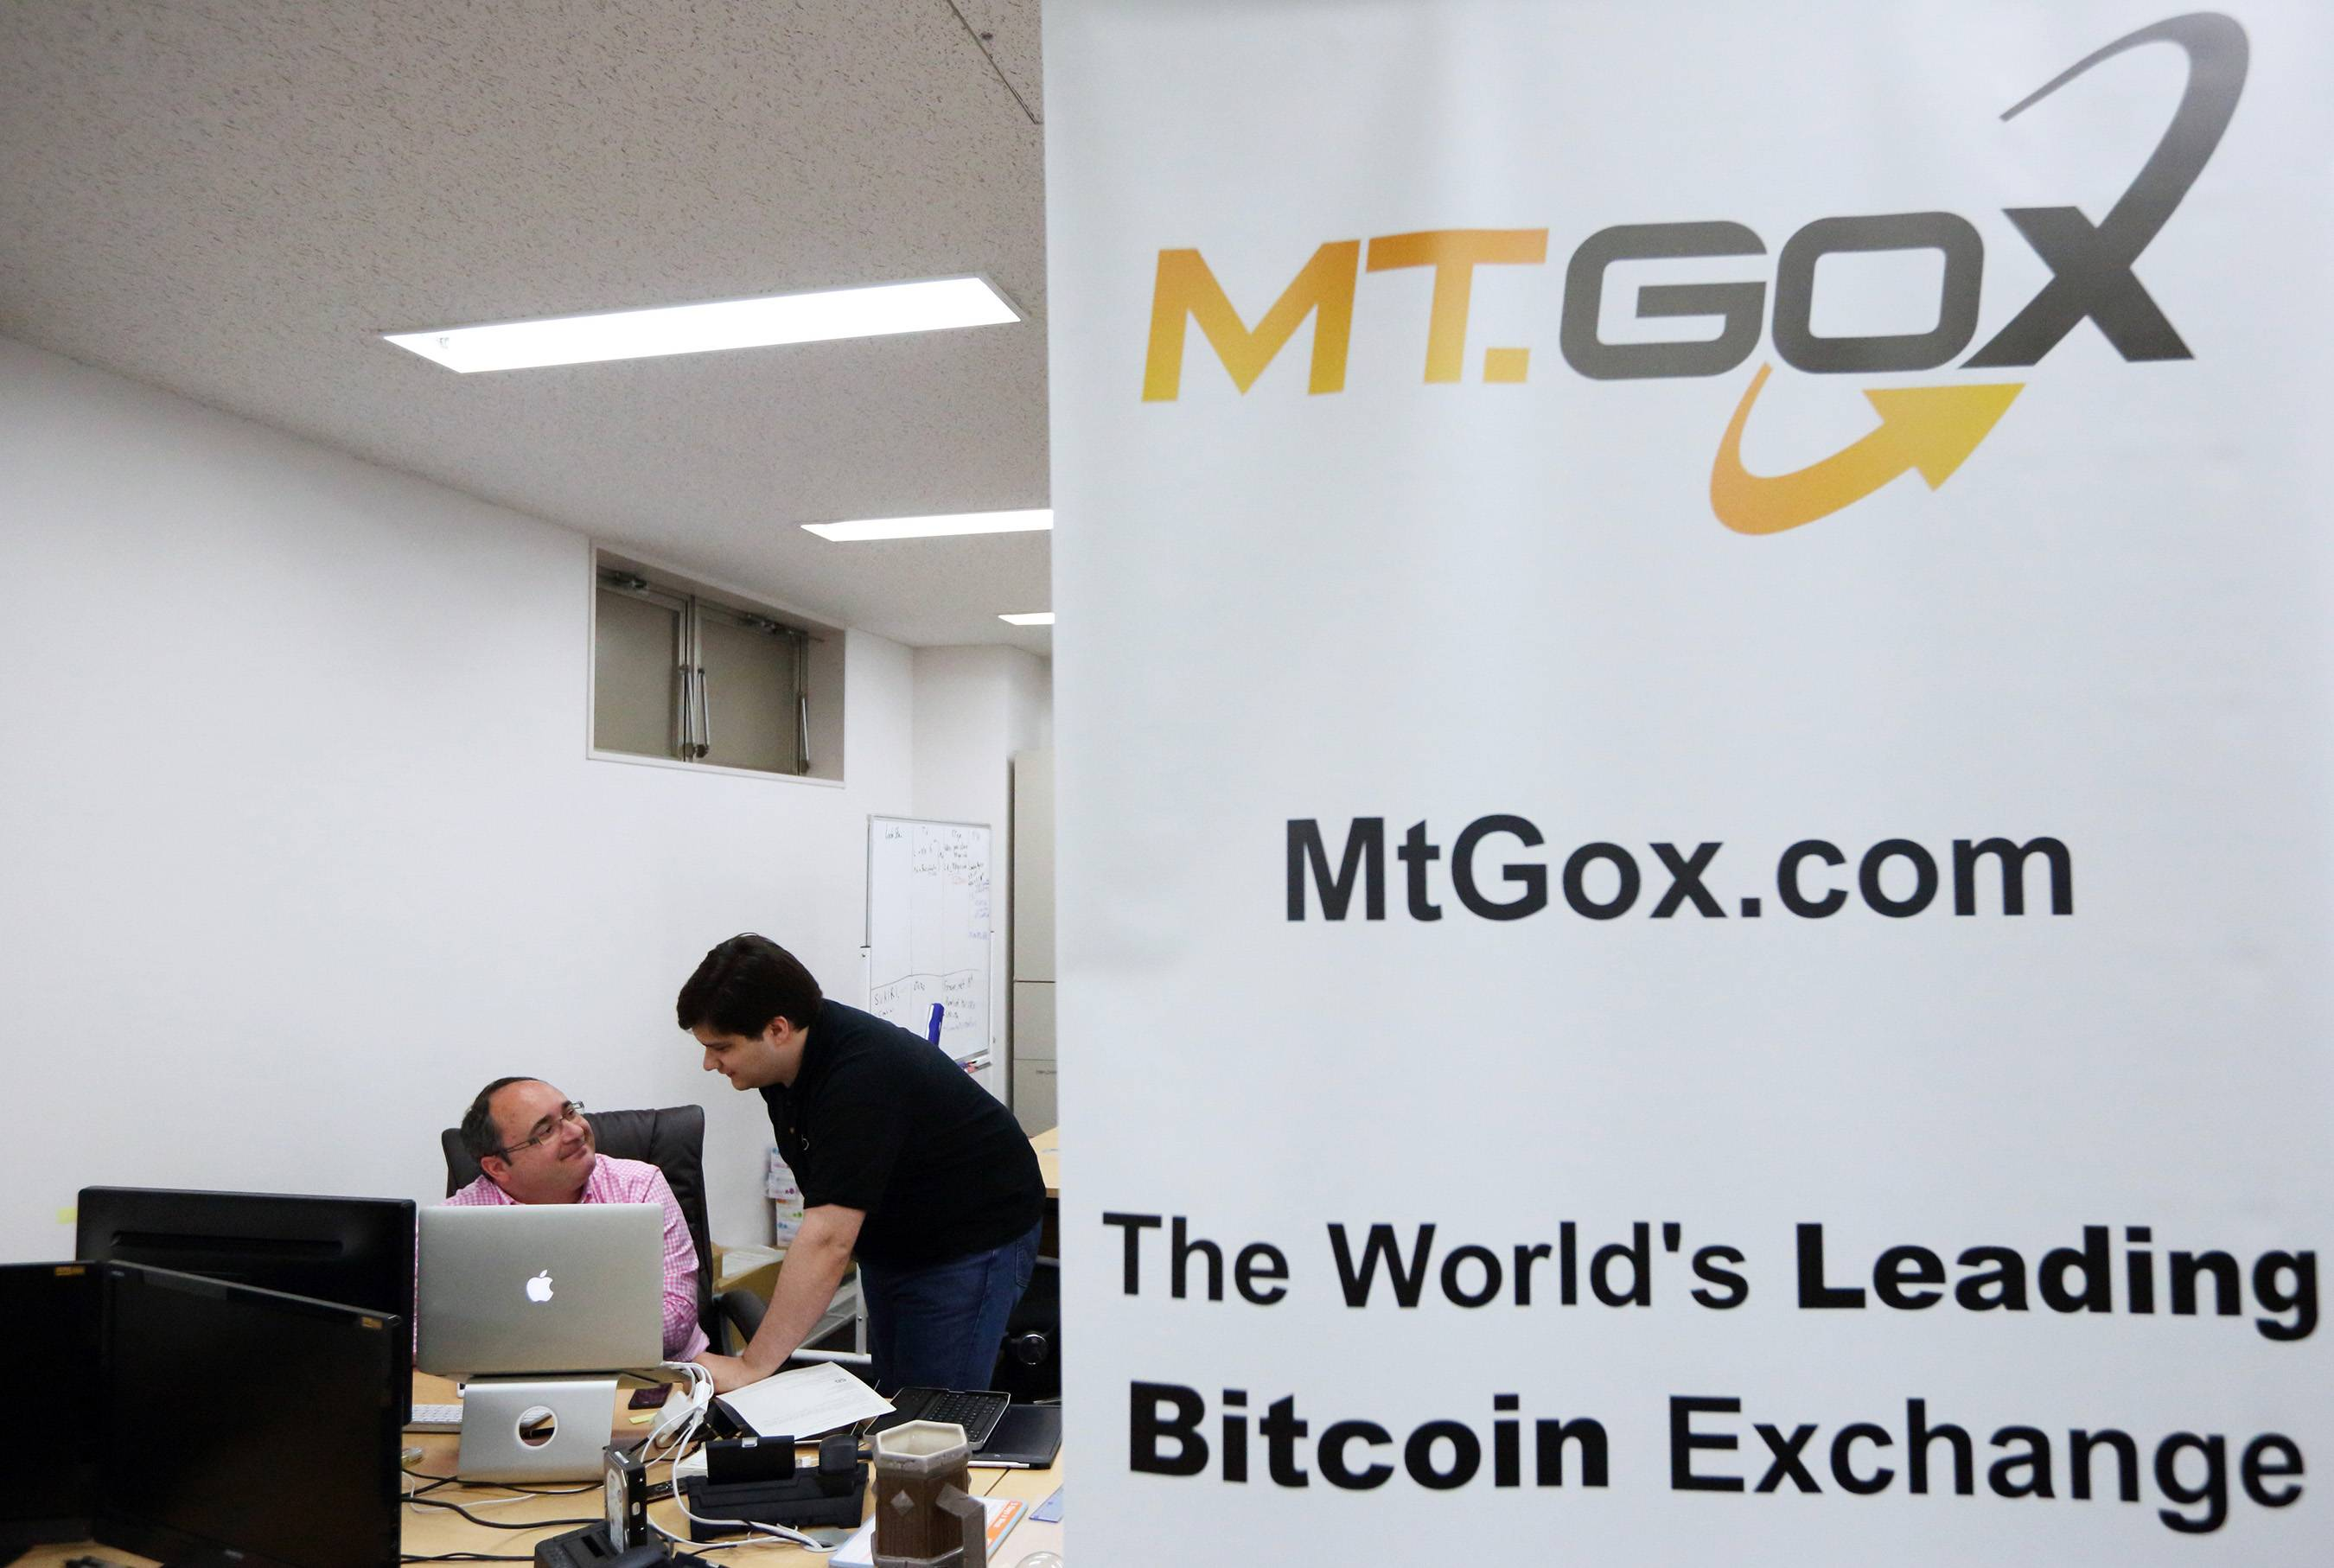 Collapse of exchange spells trouble for bitcoin